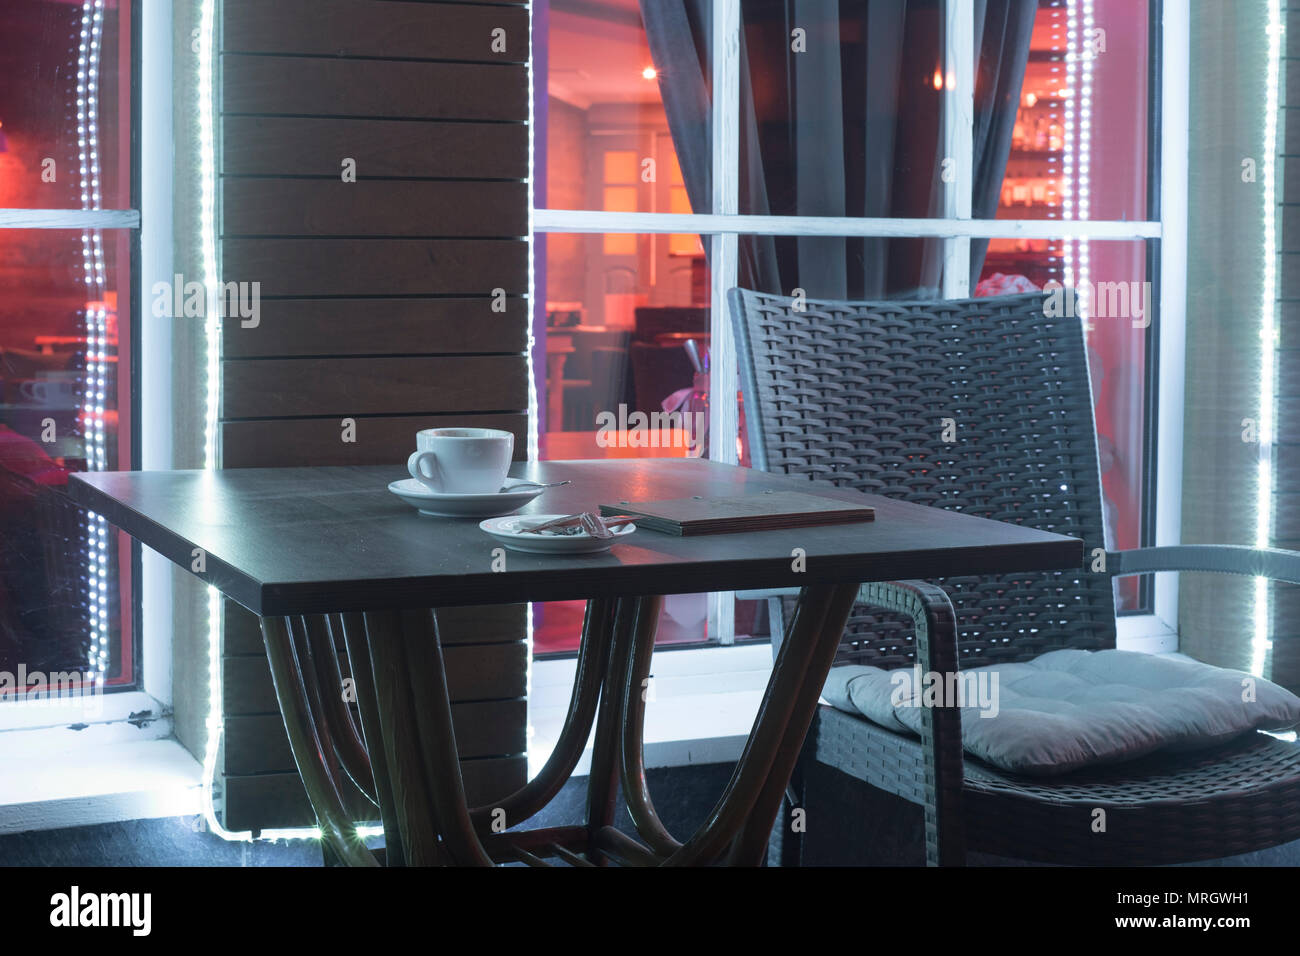 table and chair in night cafe with a mug from under coffee and the account against the background of a window - Stock Image